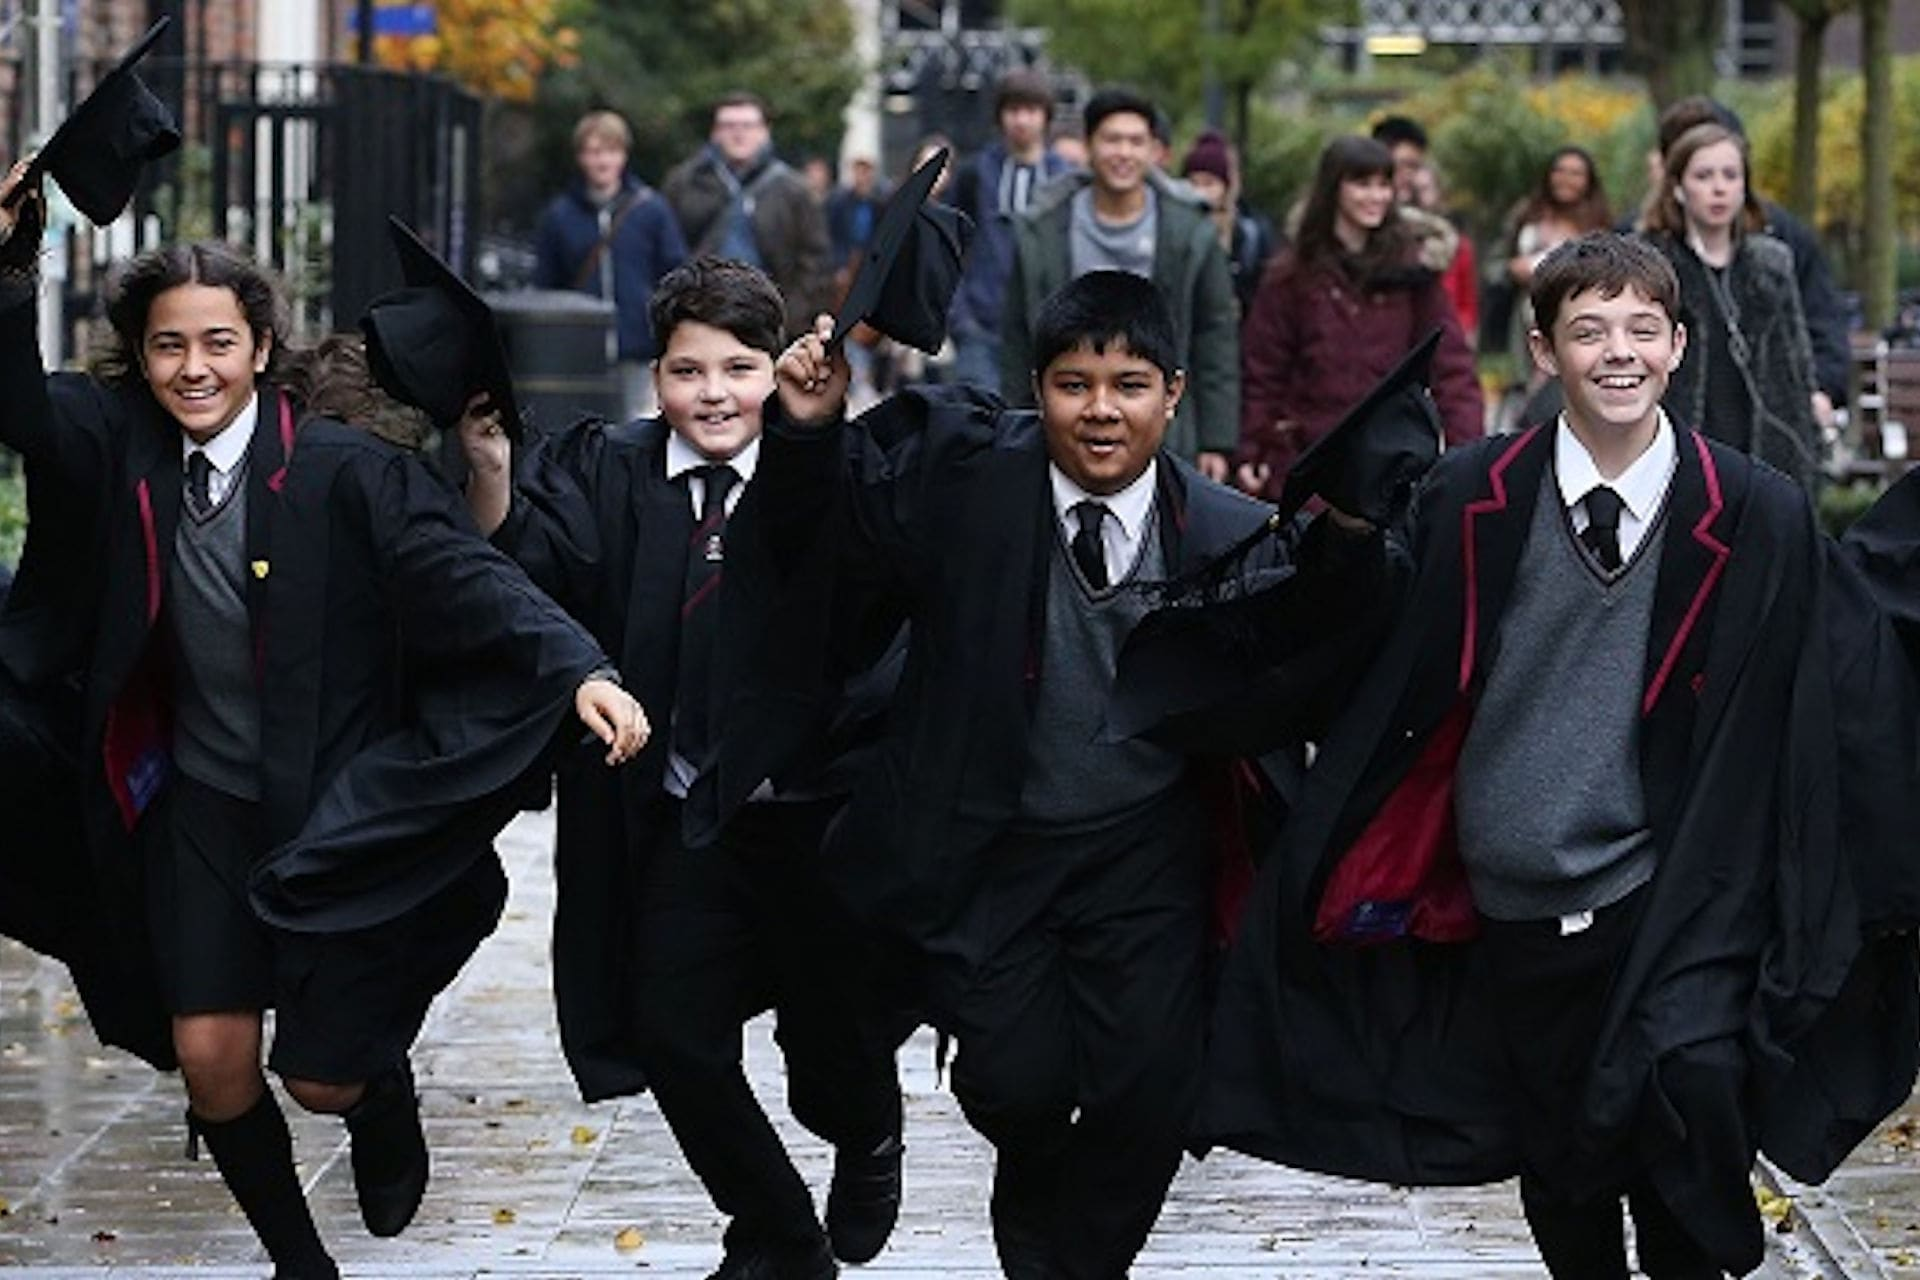 WP school students in cap and gown running towards camera smiling raising caps